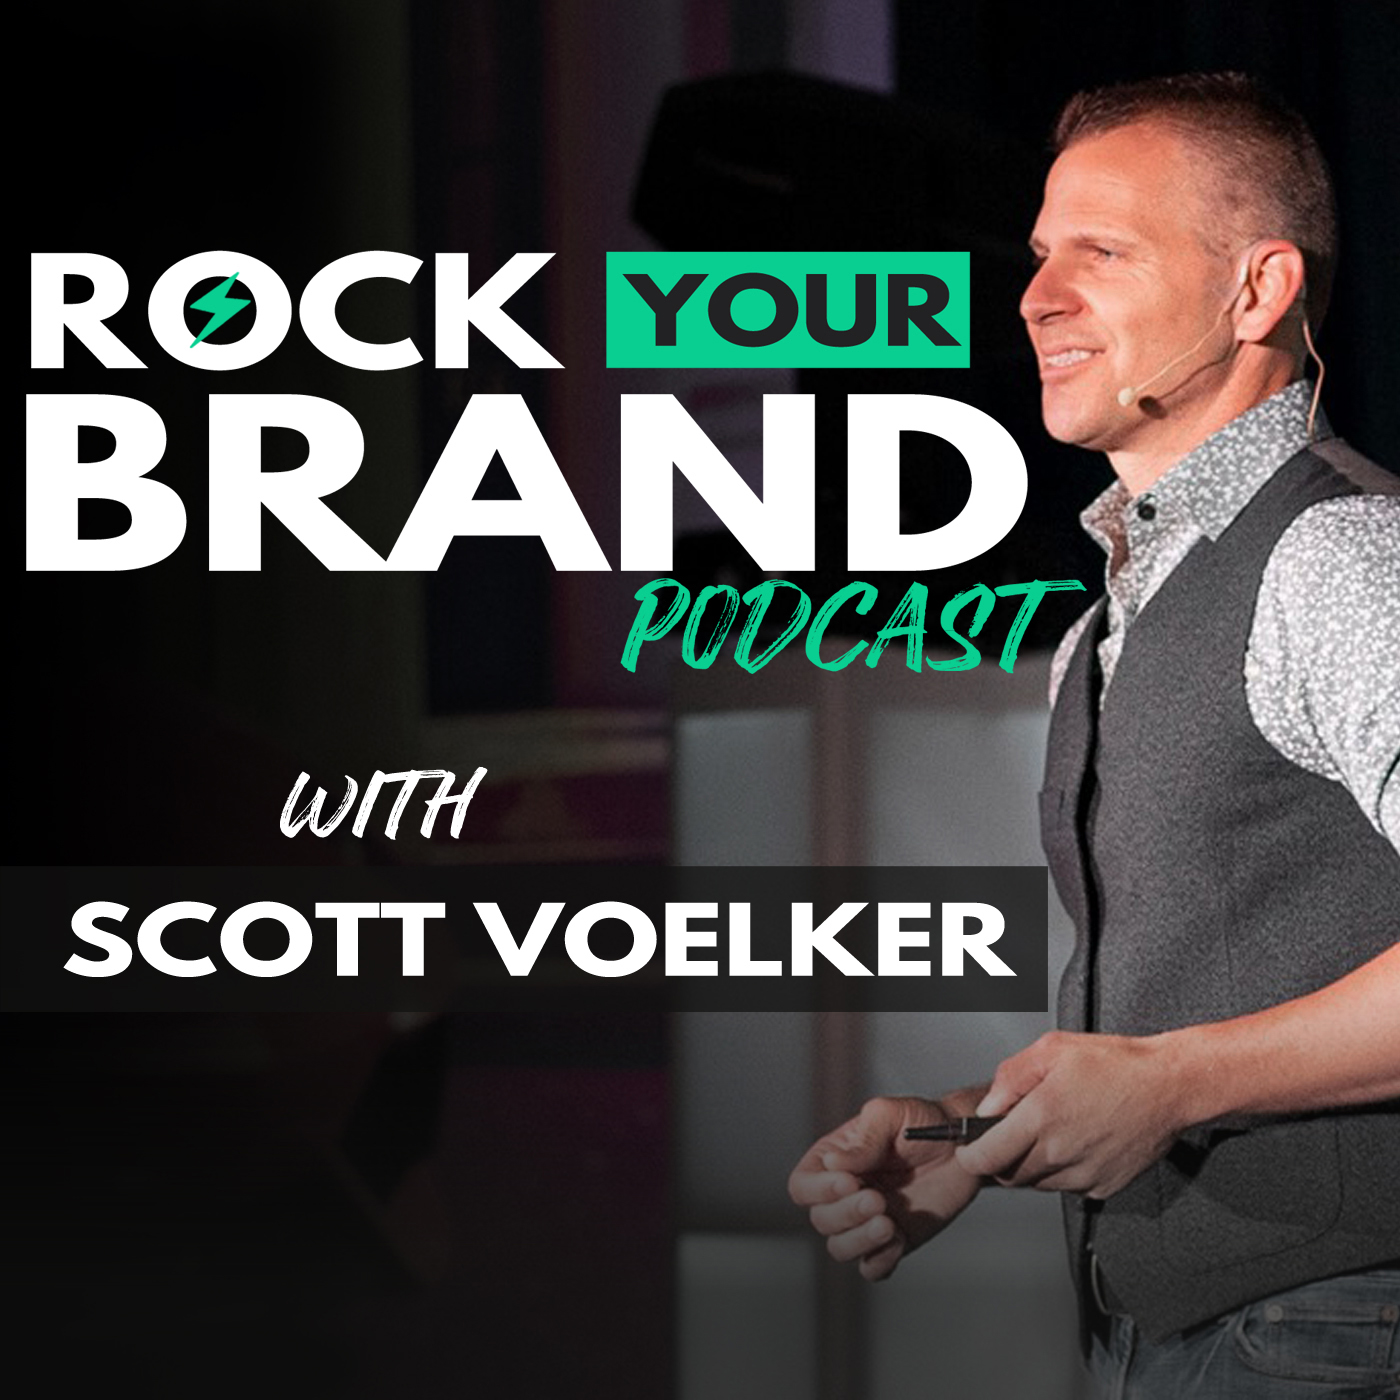 Rock Your Brand Podcast show art